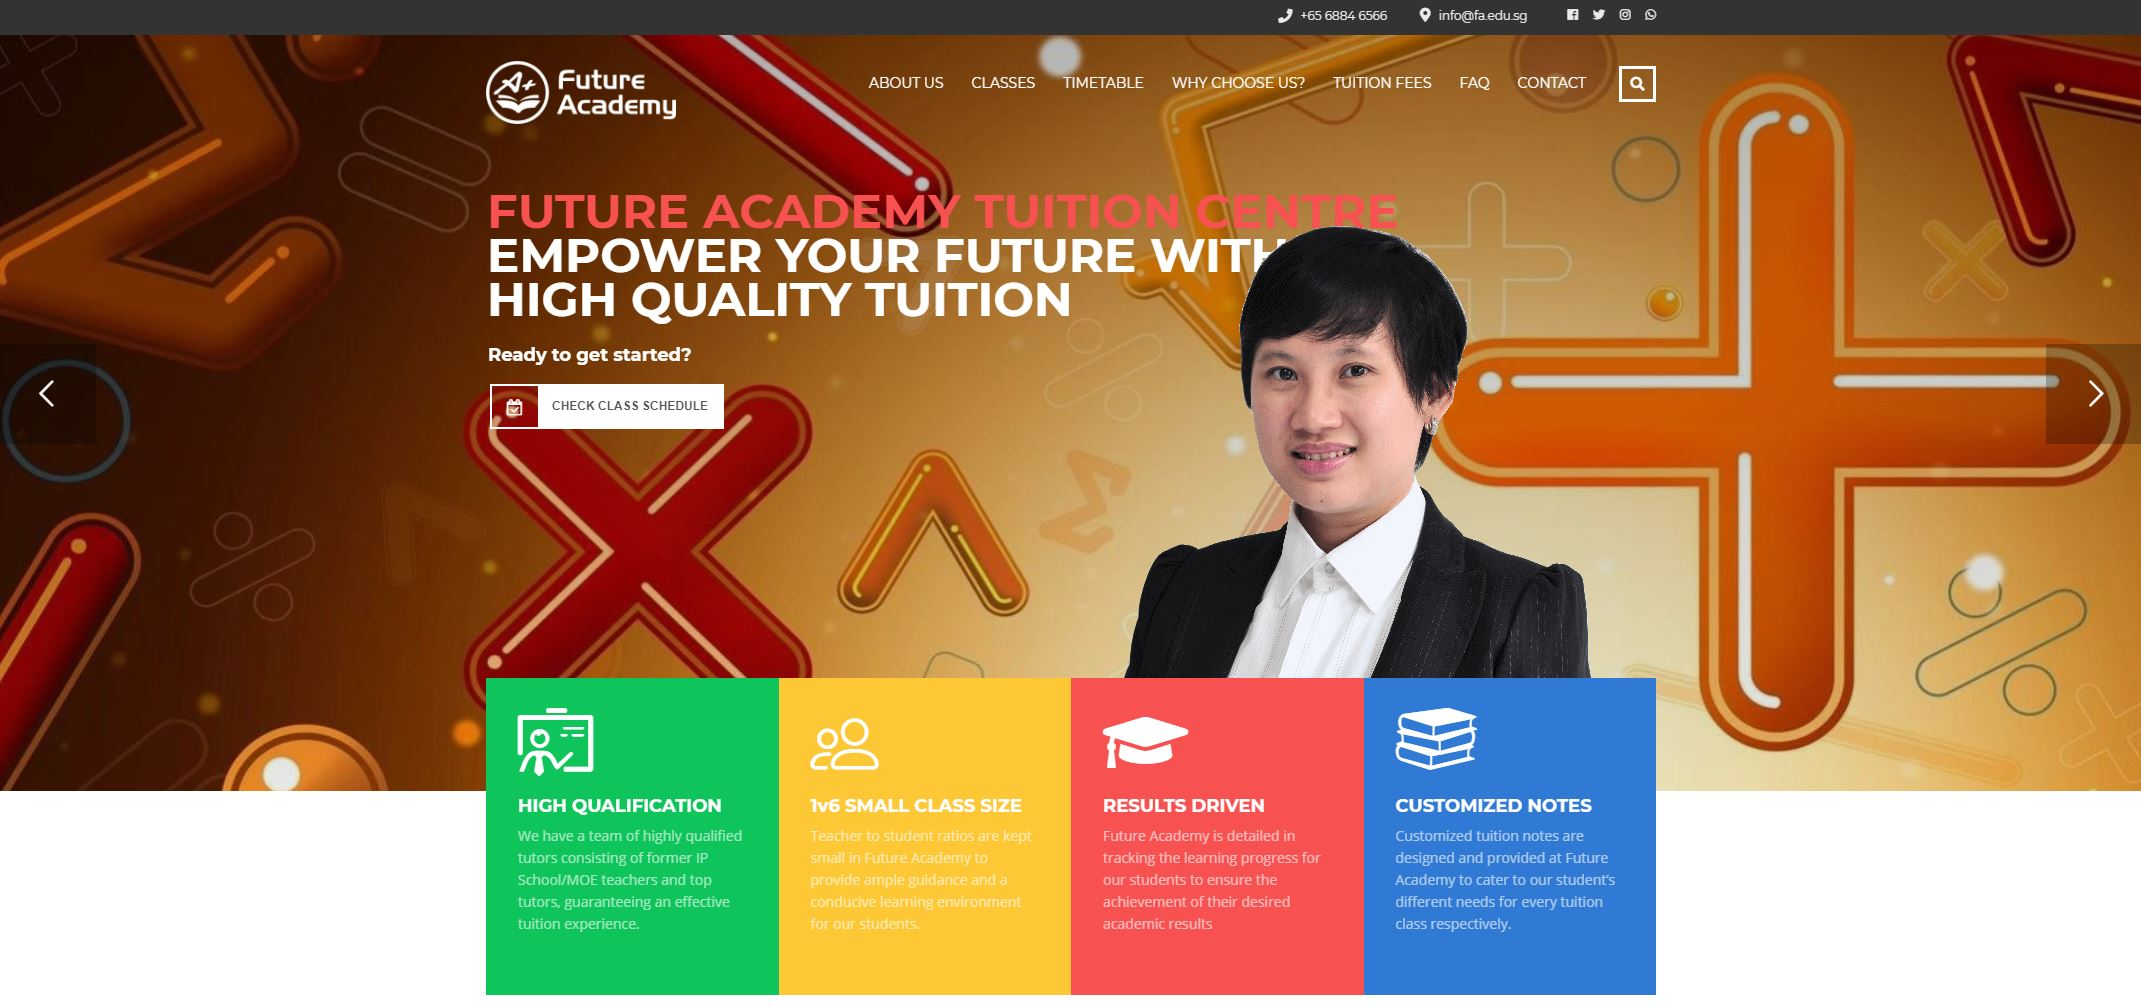 Future Academy JC Tuition